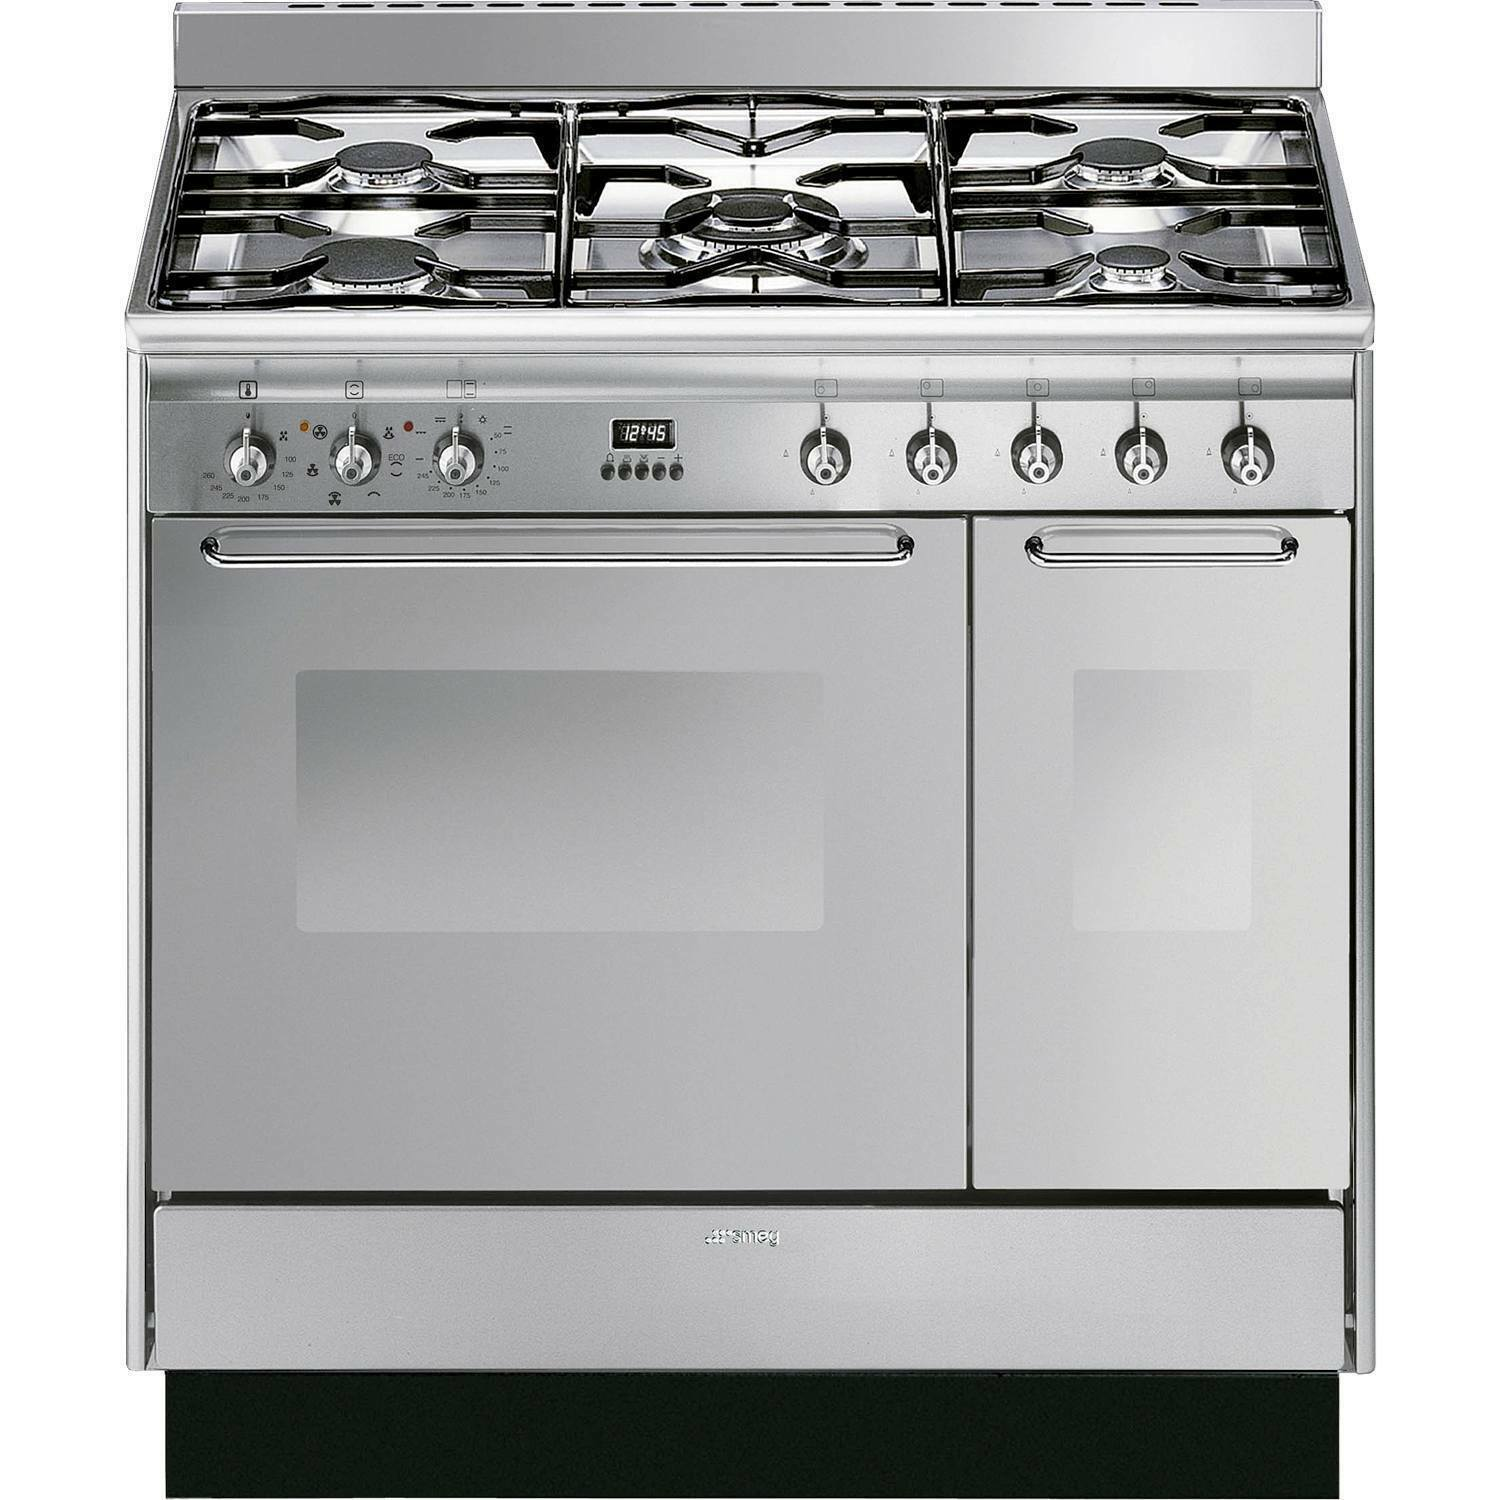 Cucina A Gas Smeg Vintage Smeg Cc92mx9 Range Cookers In Stainless Steel